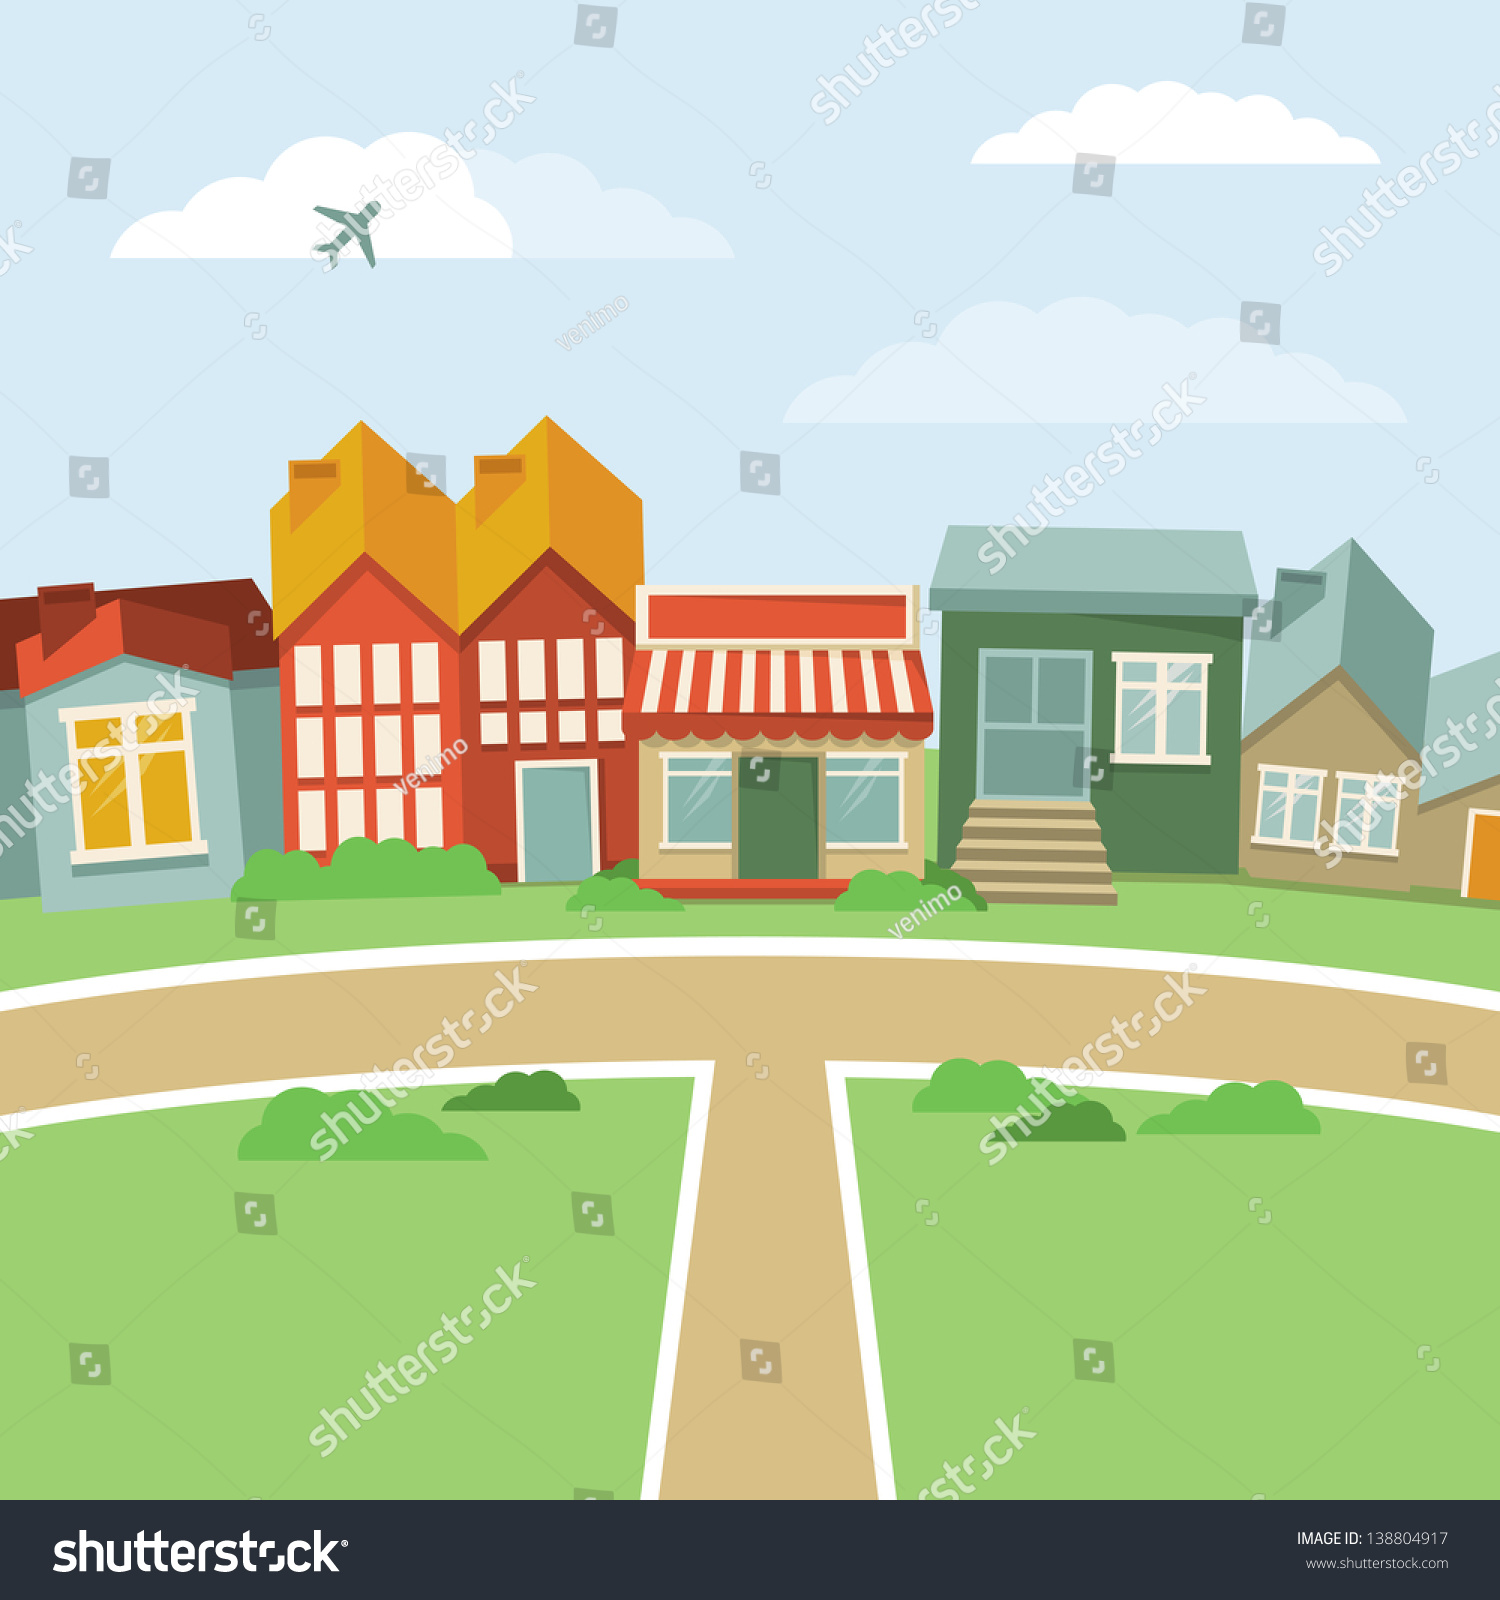 Town Landscape Vector Illustration: Abstract Landscape With Houses In